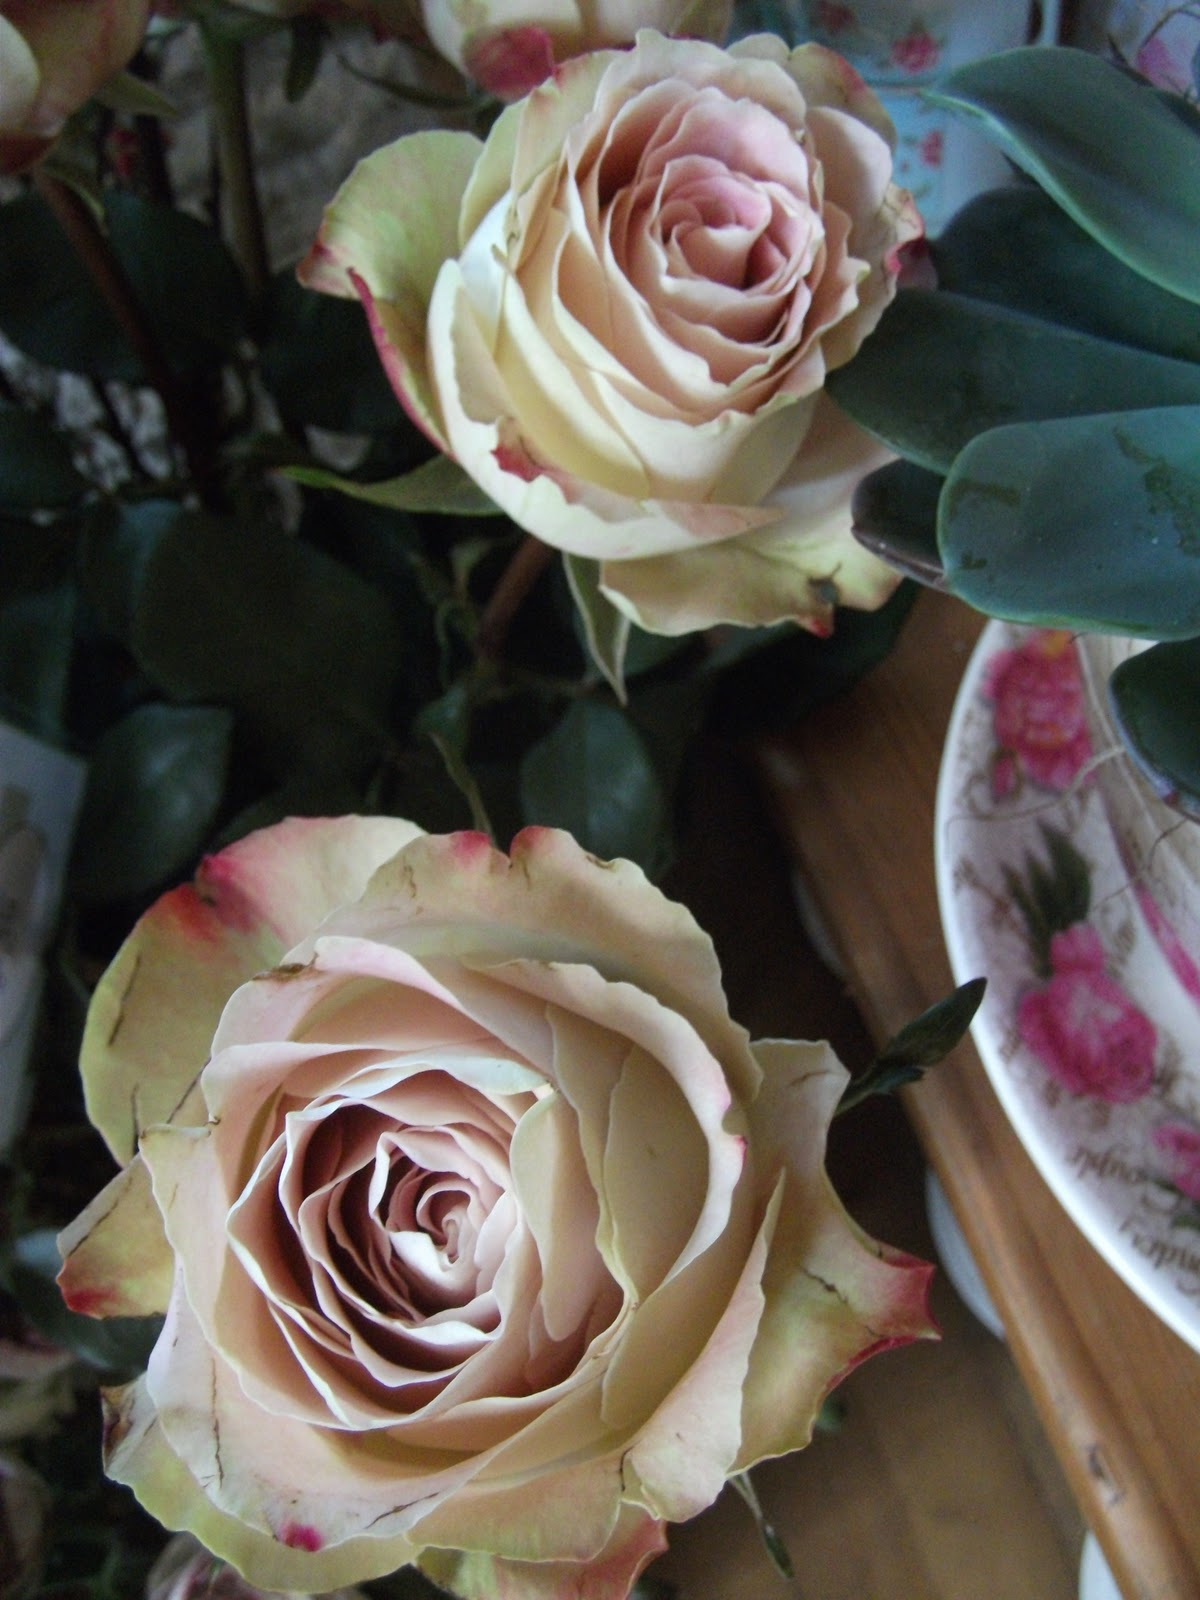 Warning This Shop Contains Gorgeous Blooms And Delightful Scents